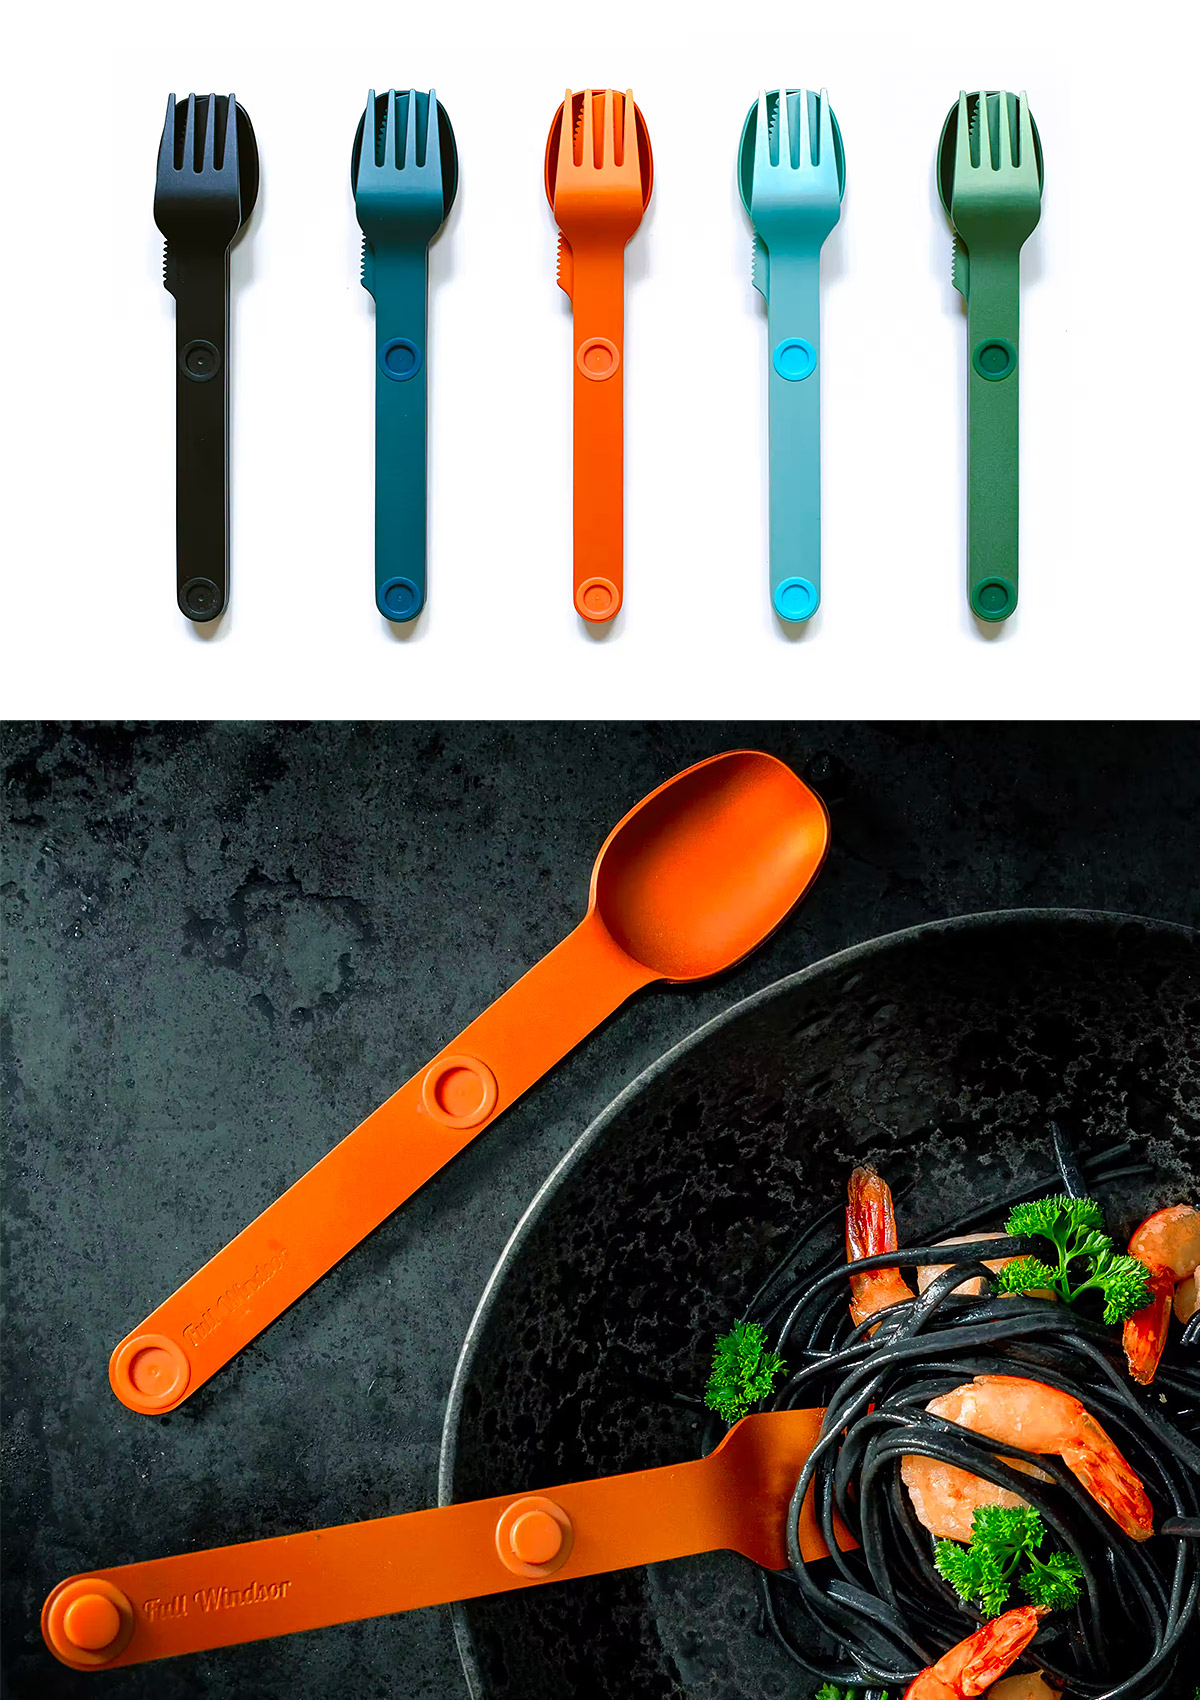 Picnic Plastic-Free with this Fresh Cutlery Kit at werd.com